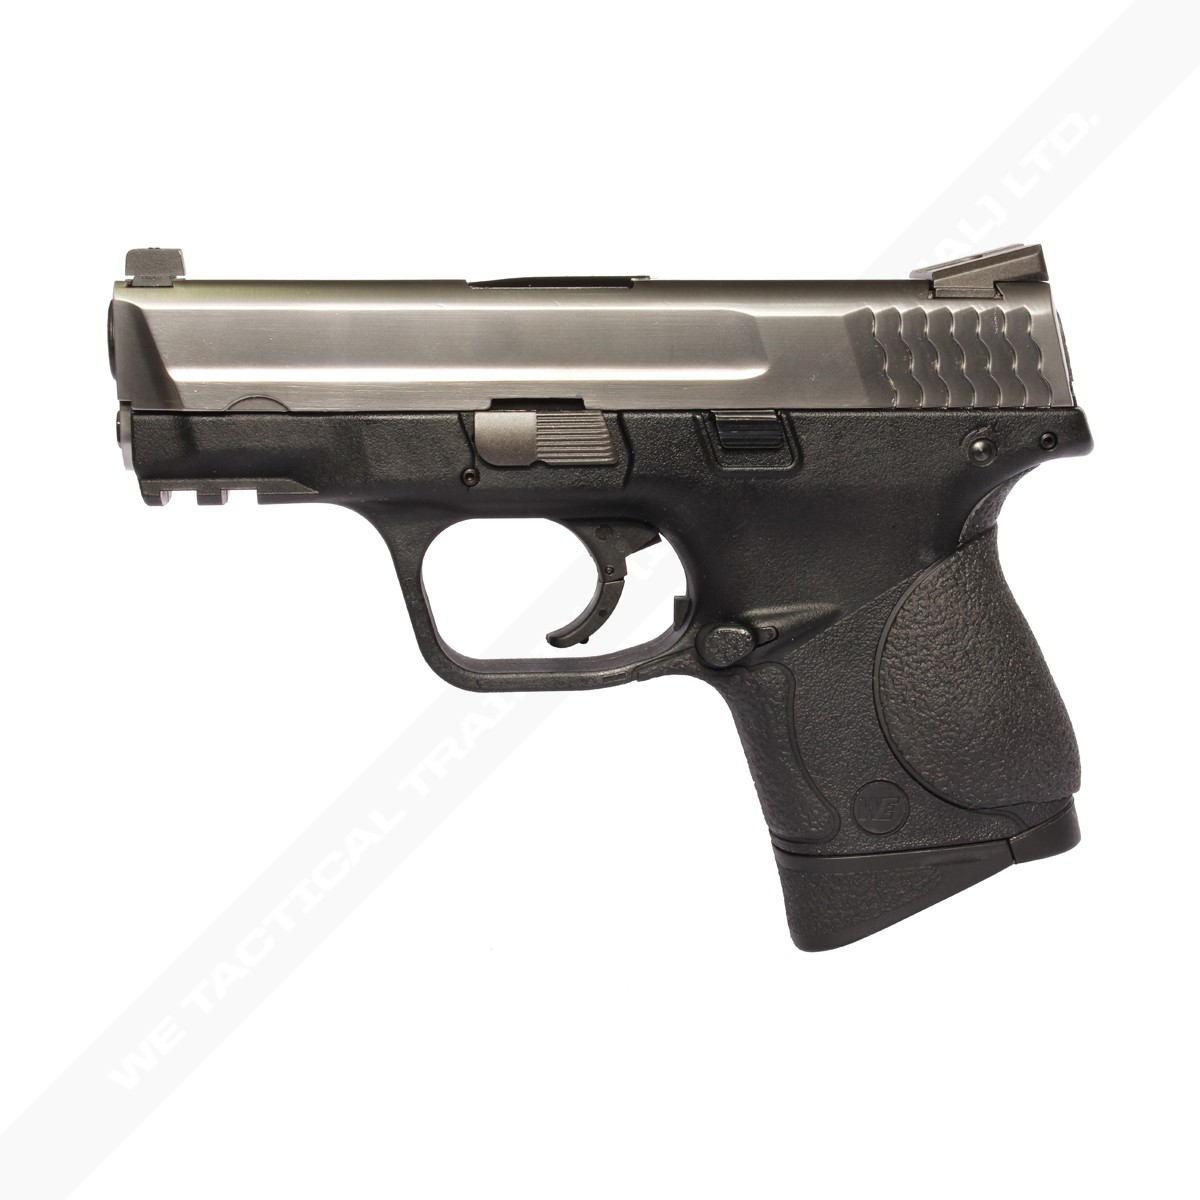 WE M&P9C / Little Bird Gas Blowback Pistol - Silver Slide